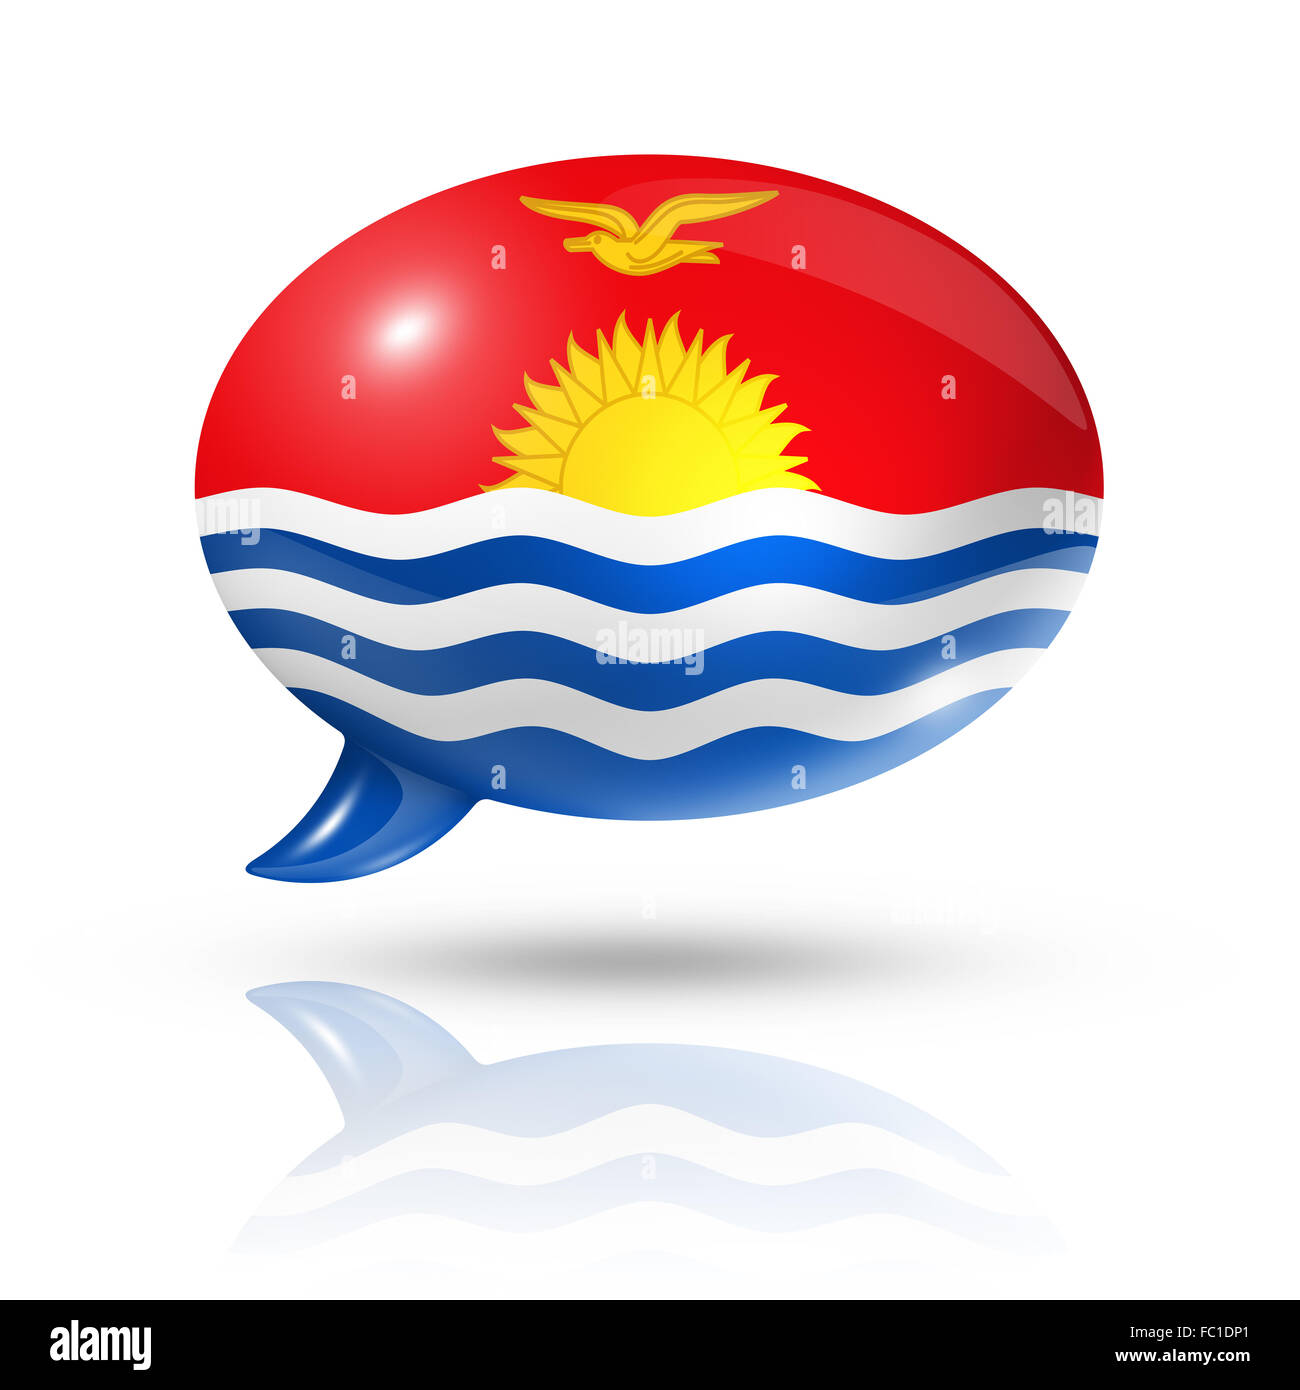 Kiribati flag speech bubble - Stock Image